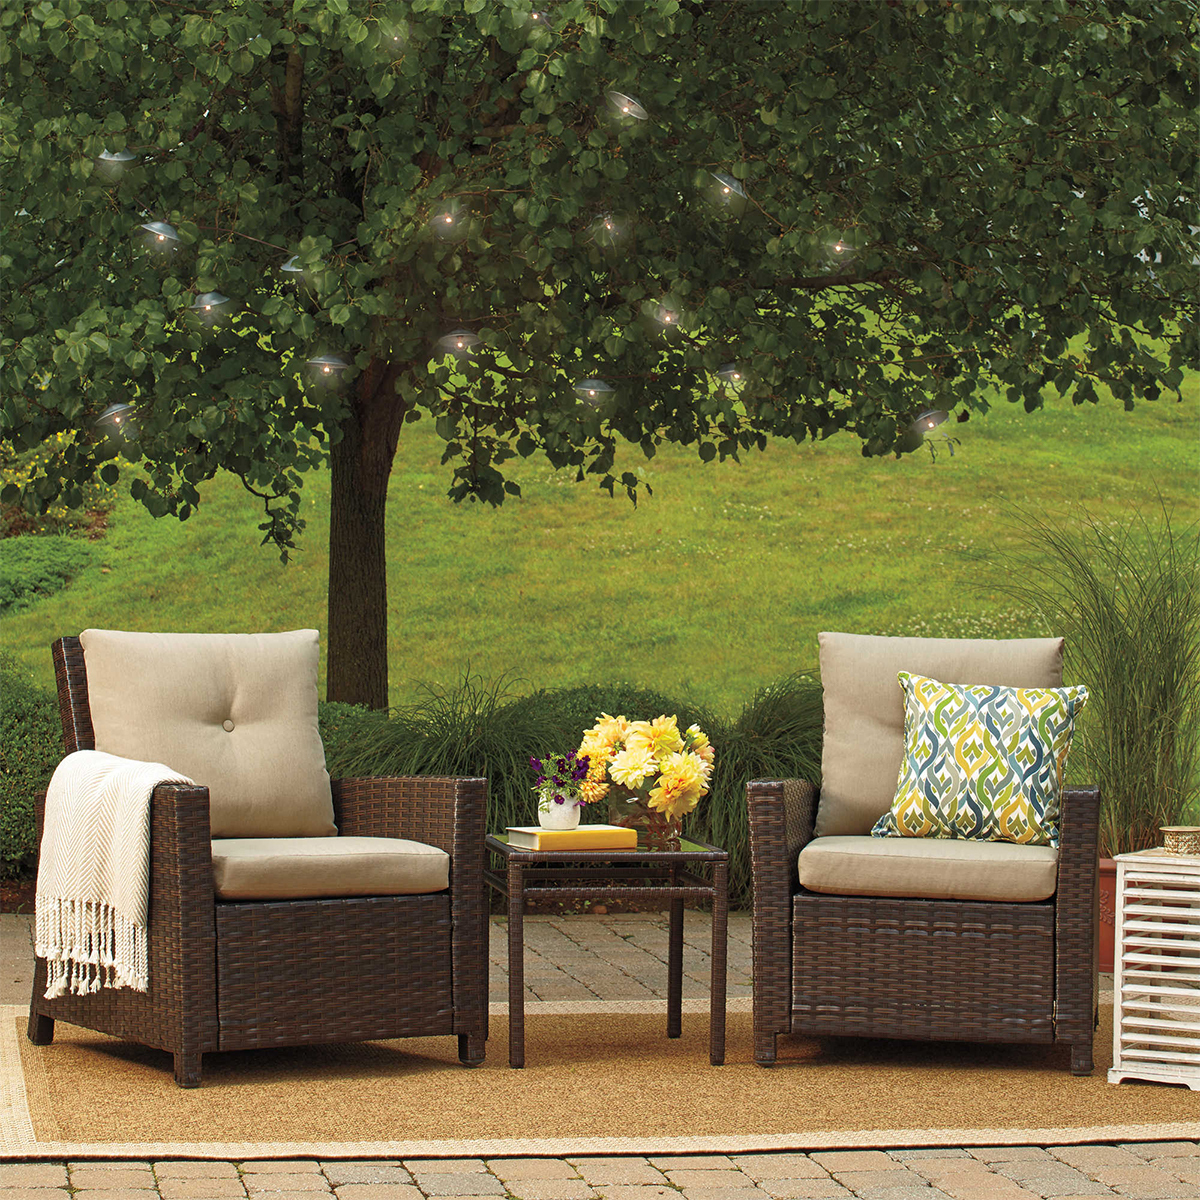 Bed Bath and Beyond three-piece wicker chair set photo